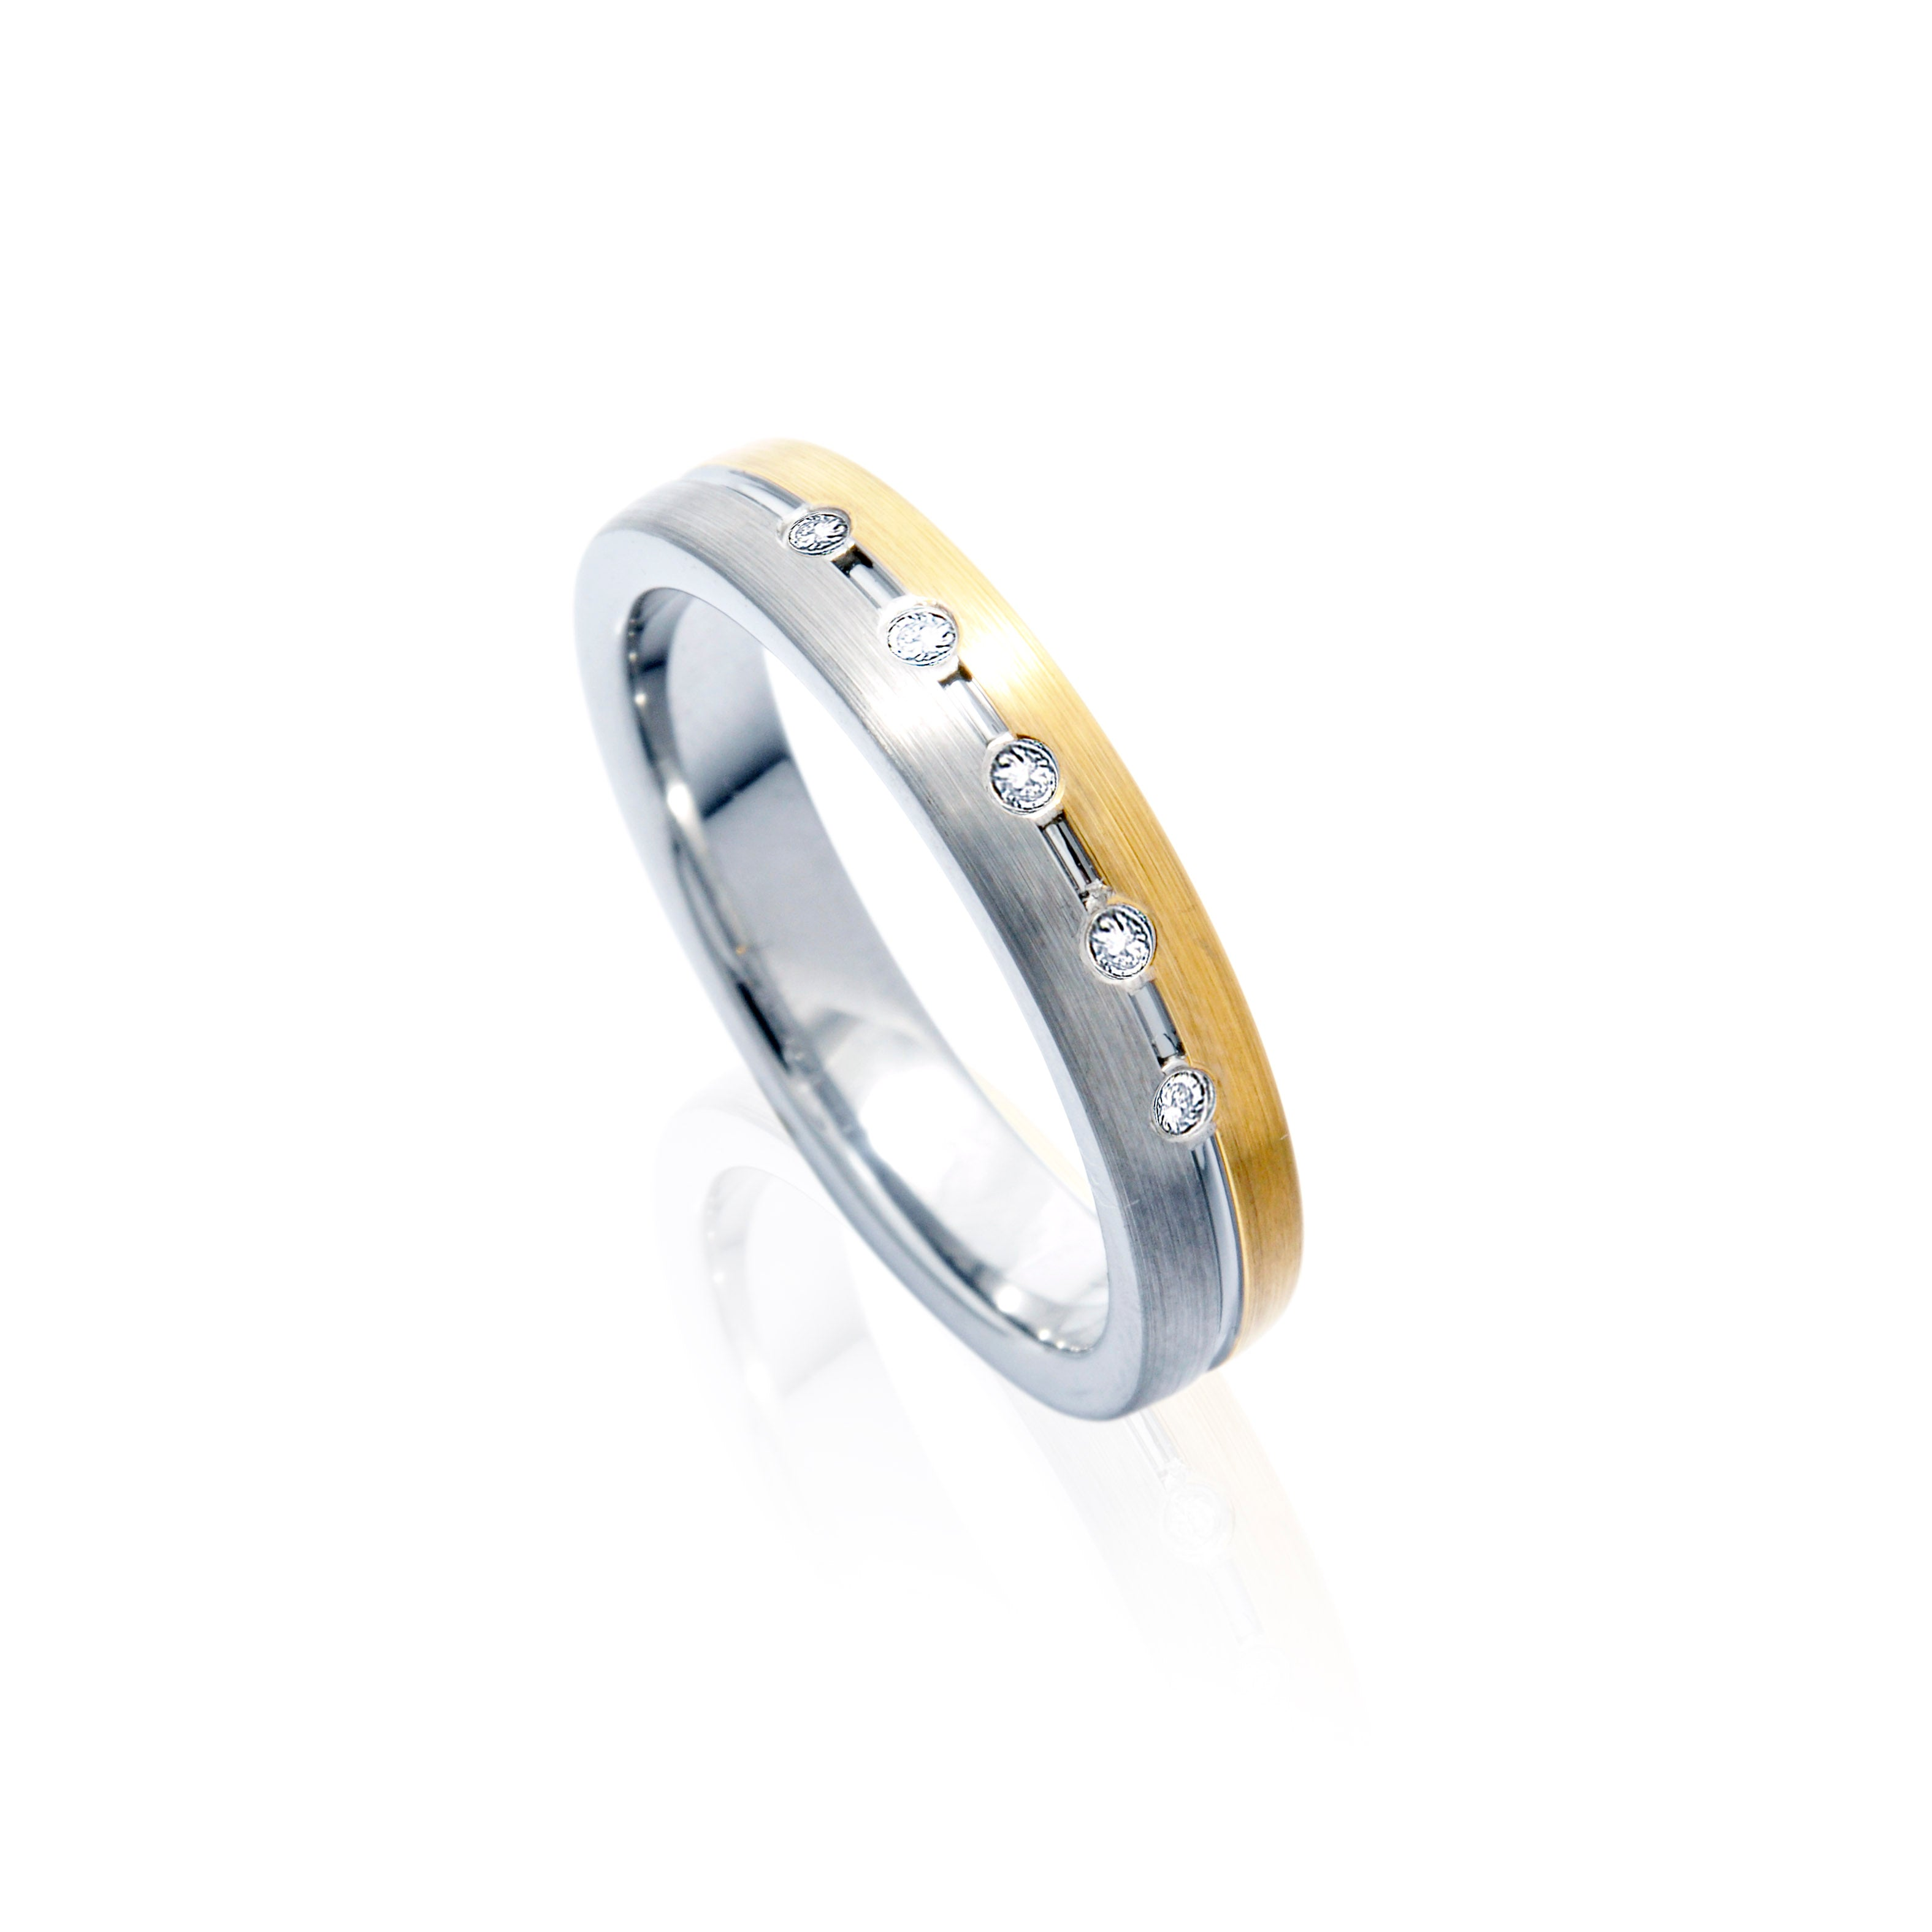 The SUPREME Two-Tone tone Tungsten Ring with Diamonds in Five Rows